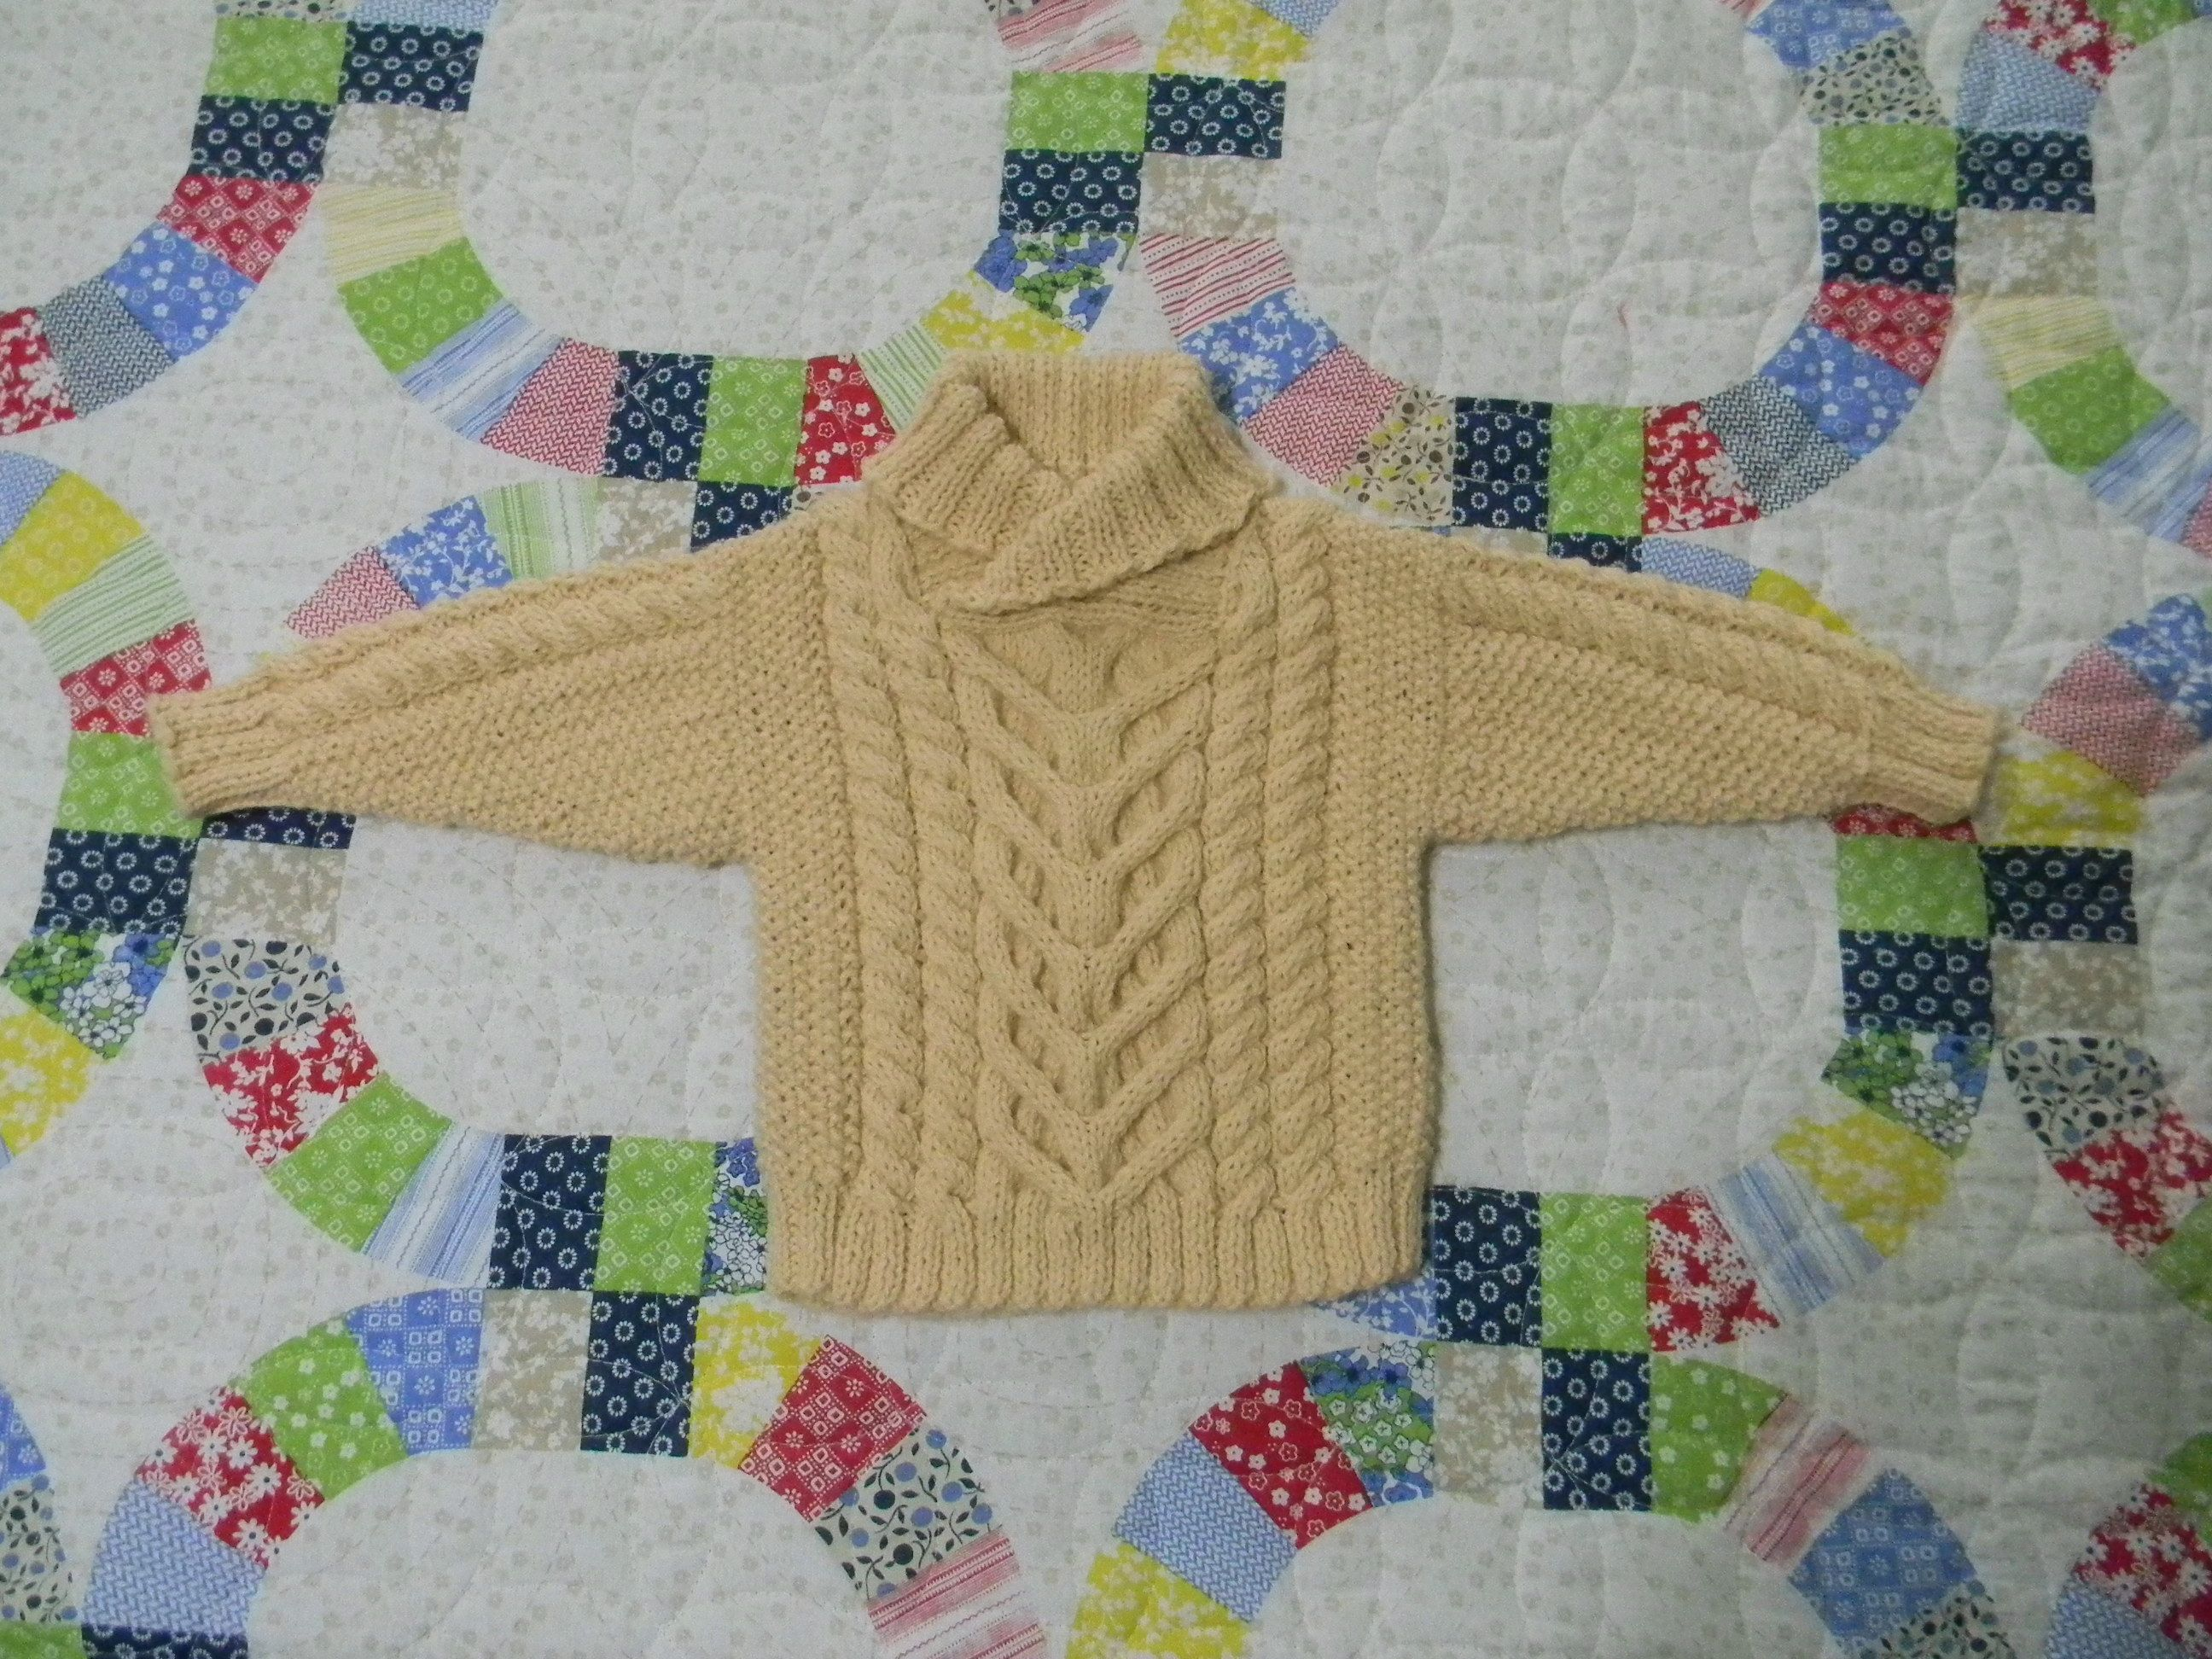 From 60 Baby Knits but I made a few changes to suit my style of knitting.